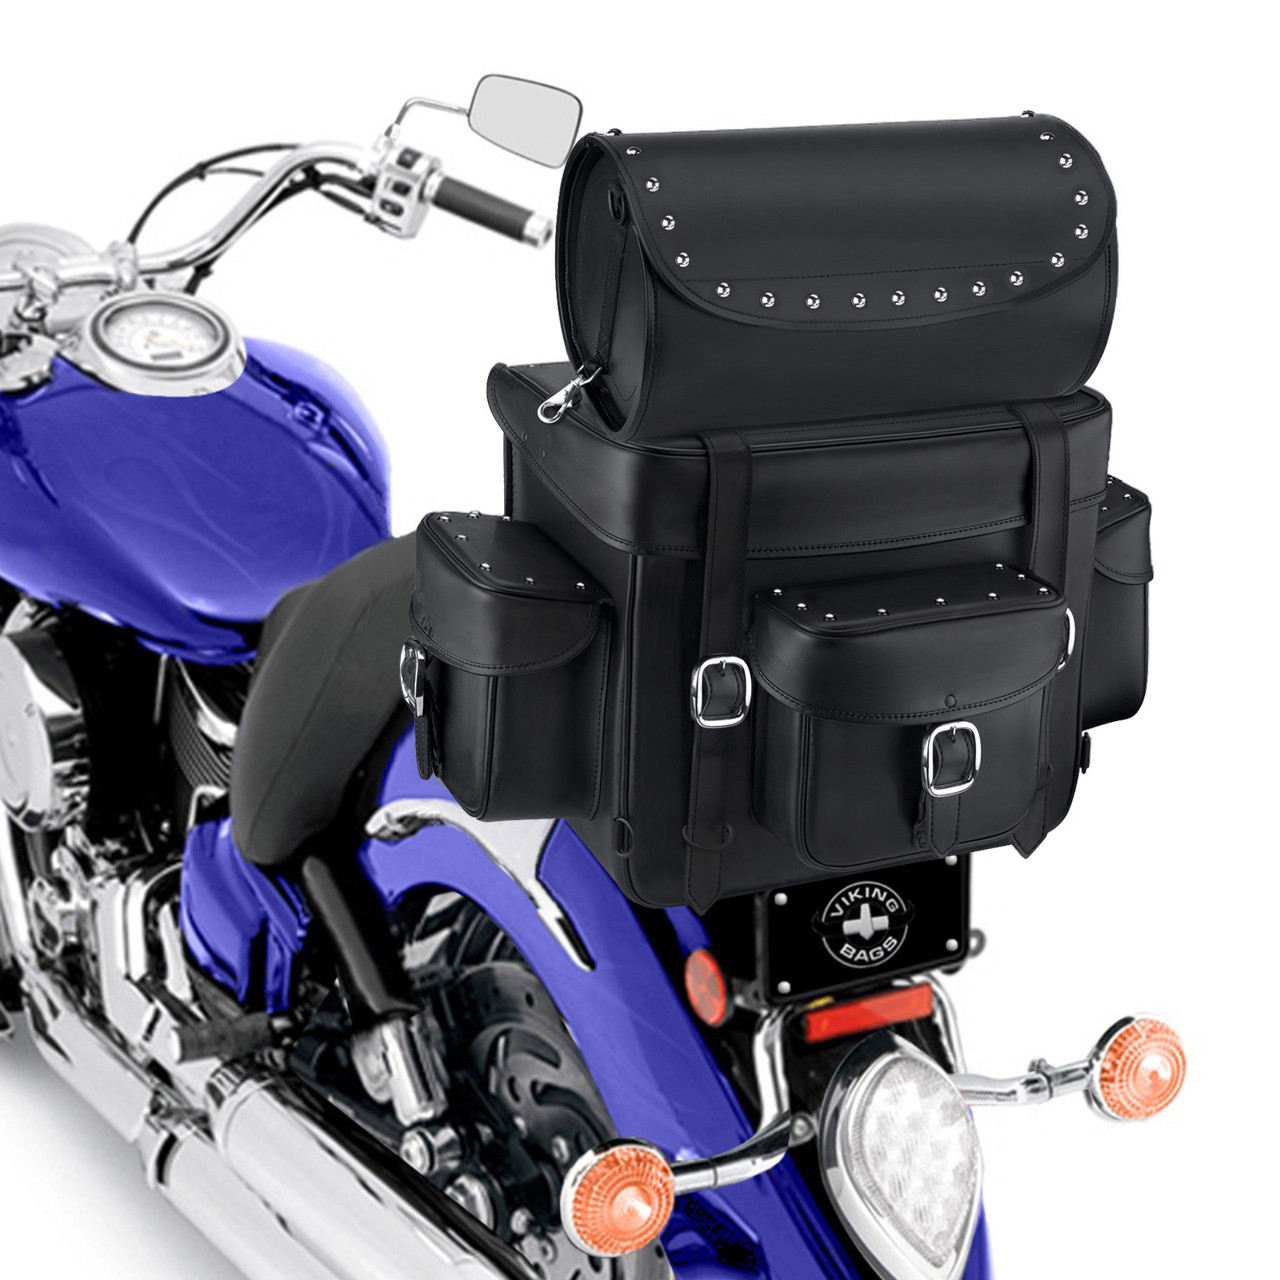 Revival Series Large Studded Sissy Bar Bag On Bike Zoom View